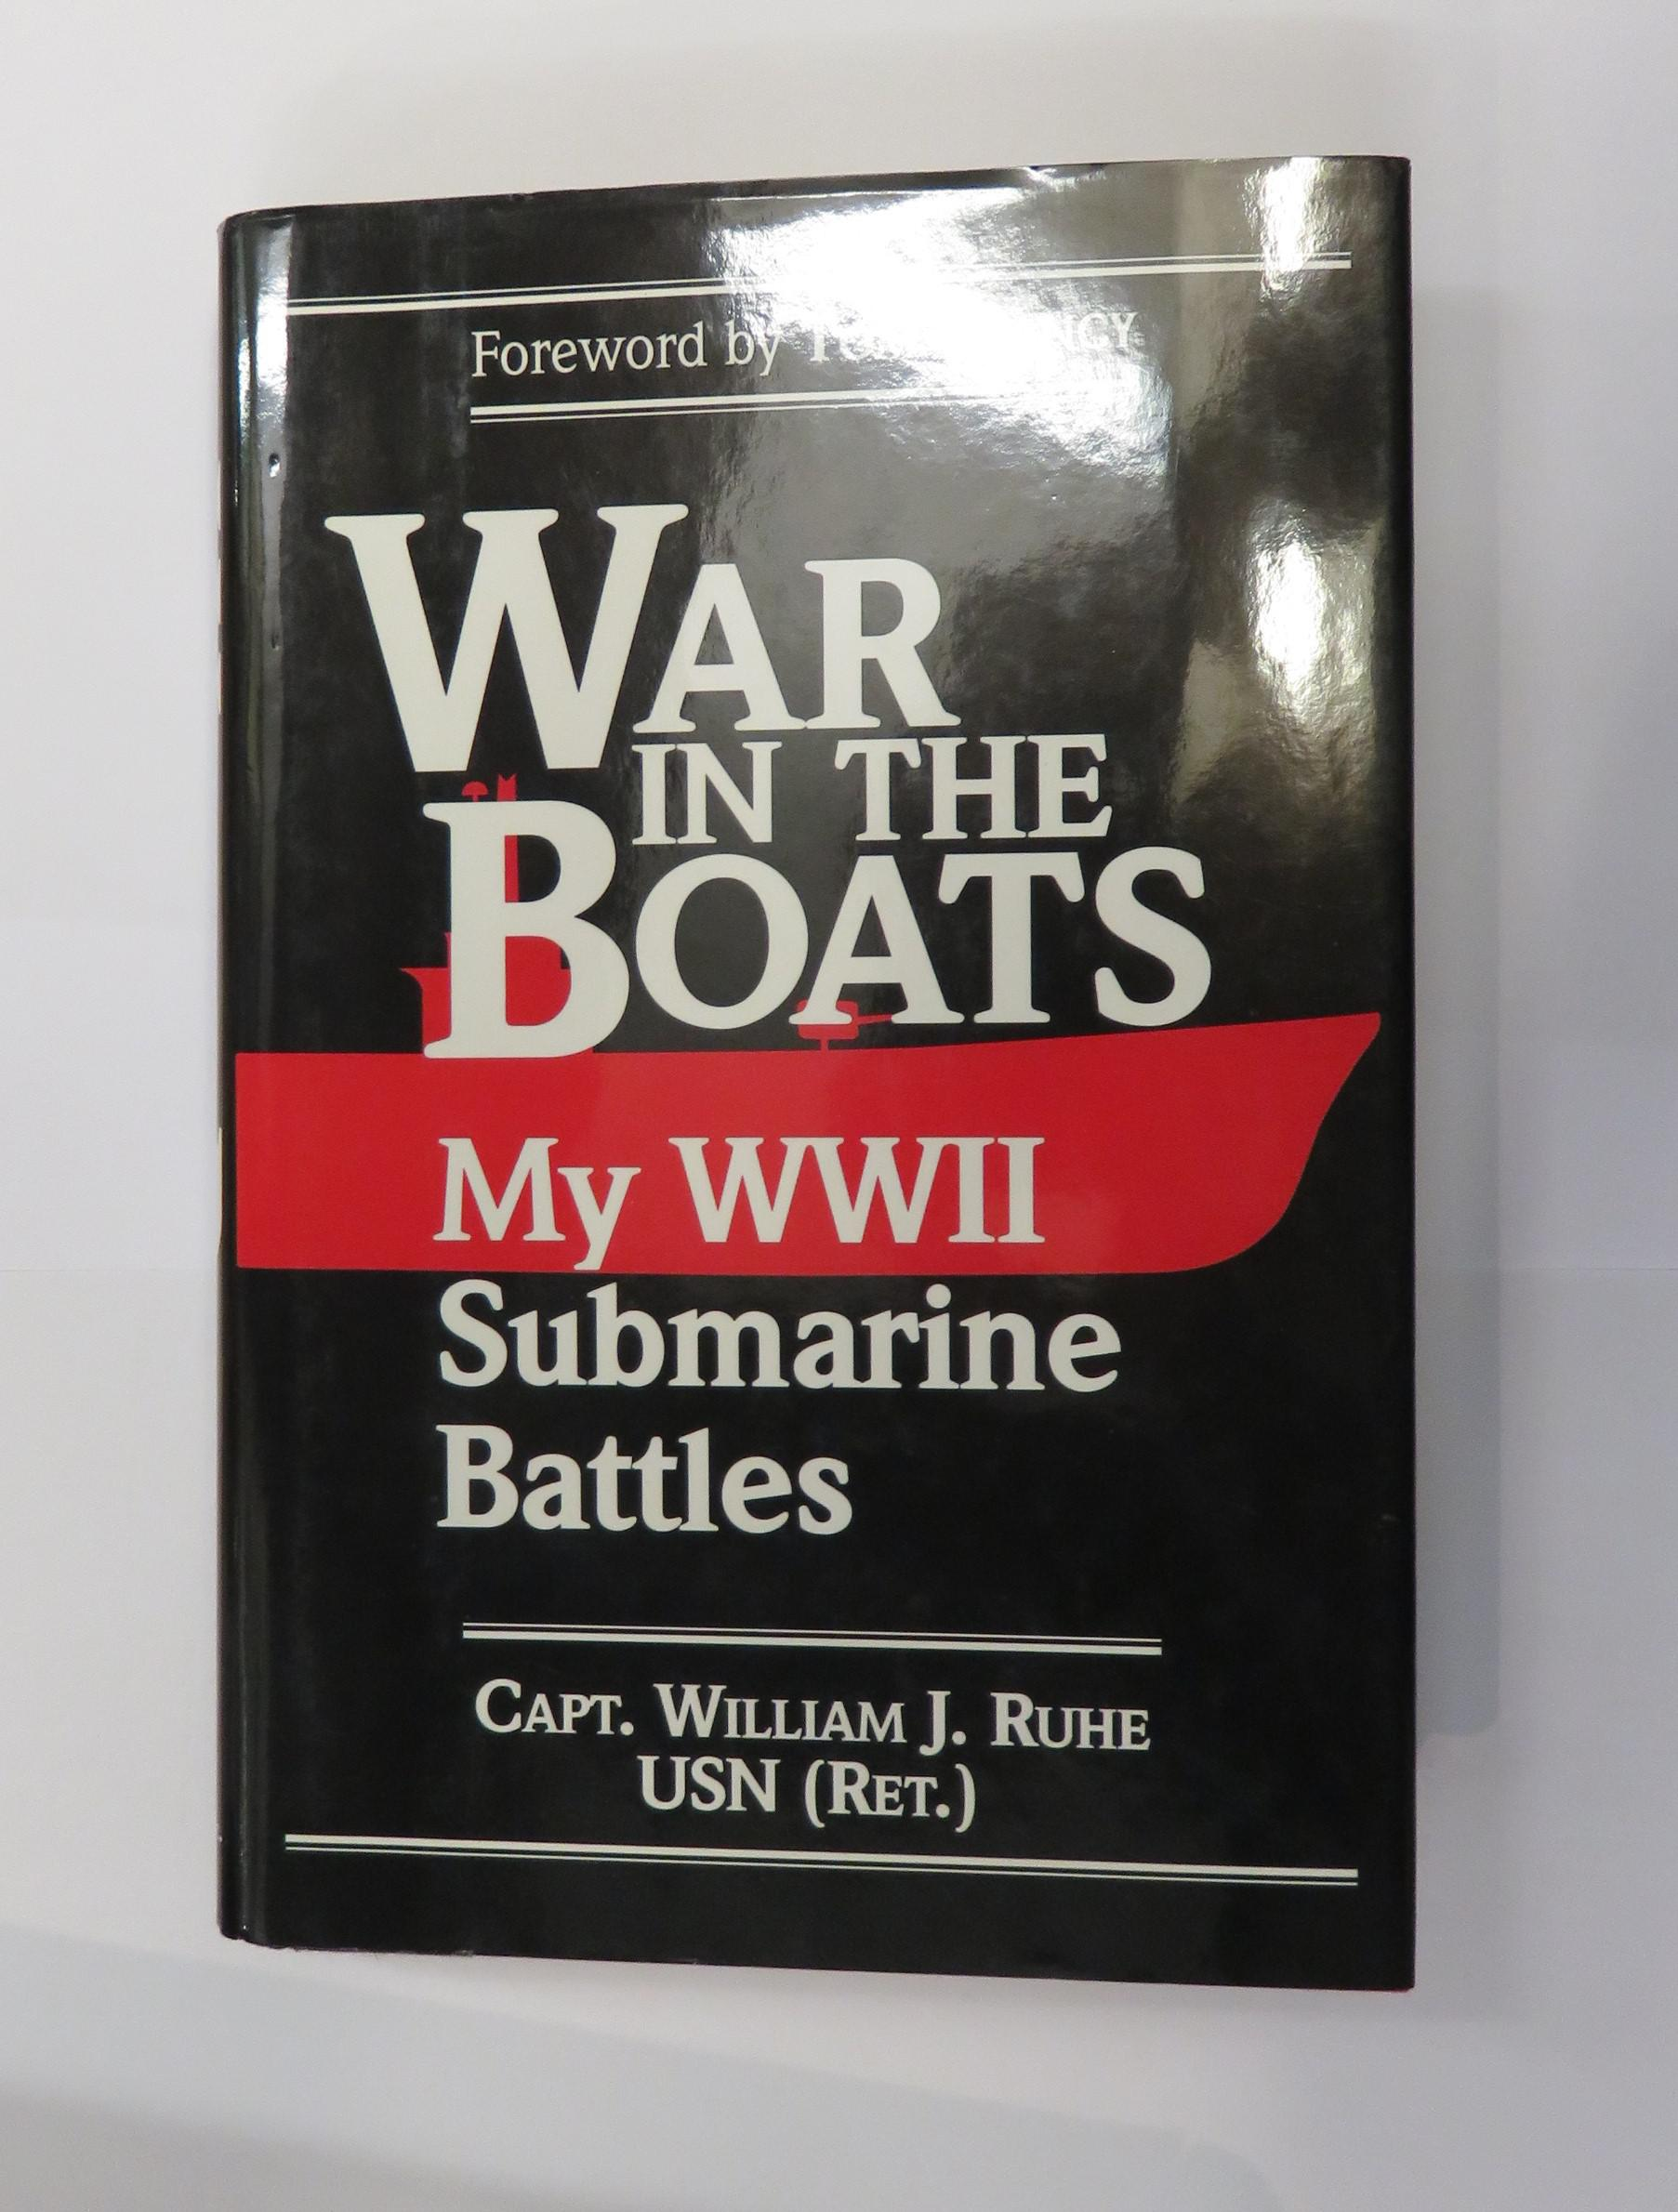 Wars in the Boats